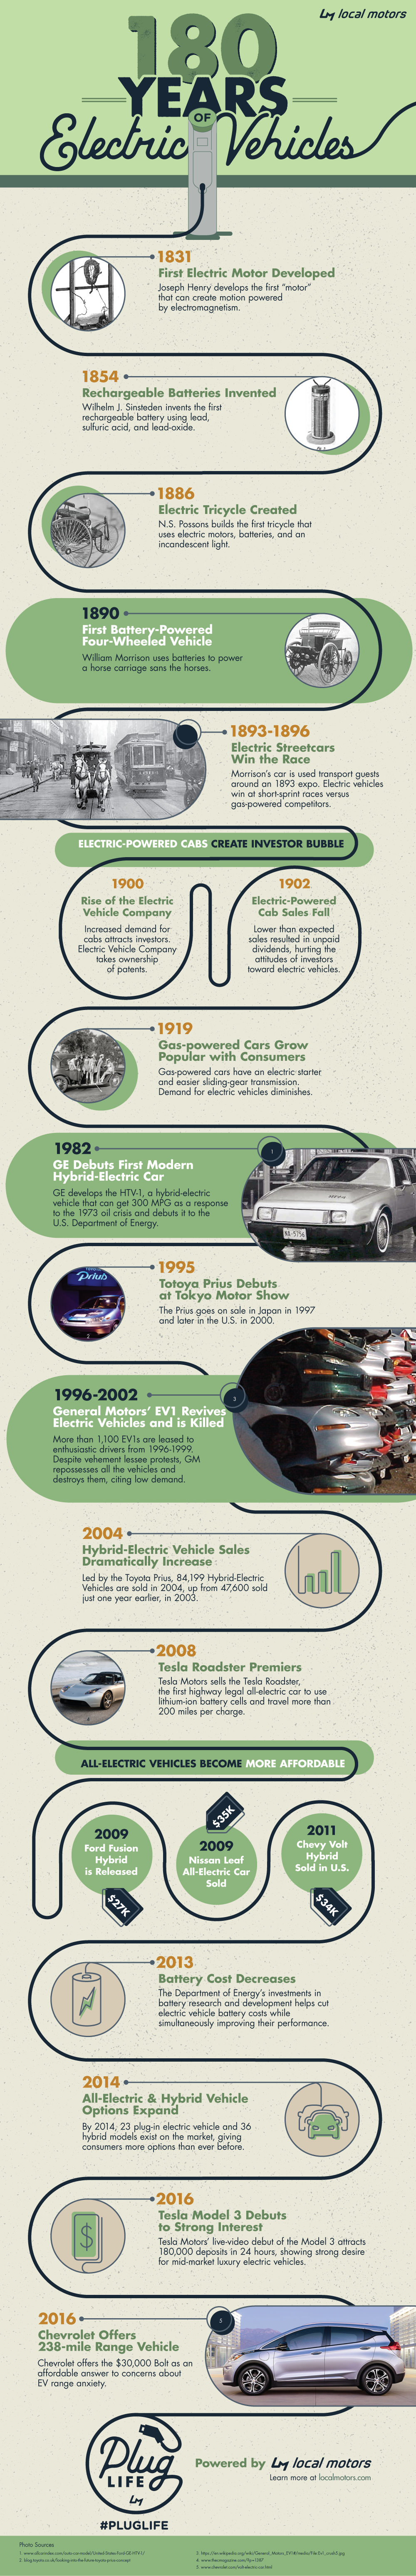 History of Electric Vehicles Infographic